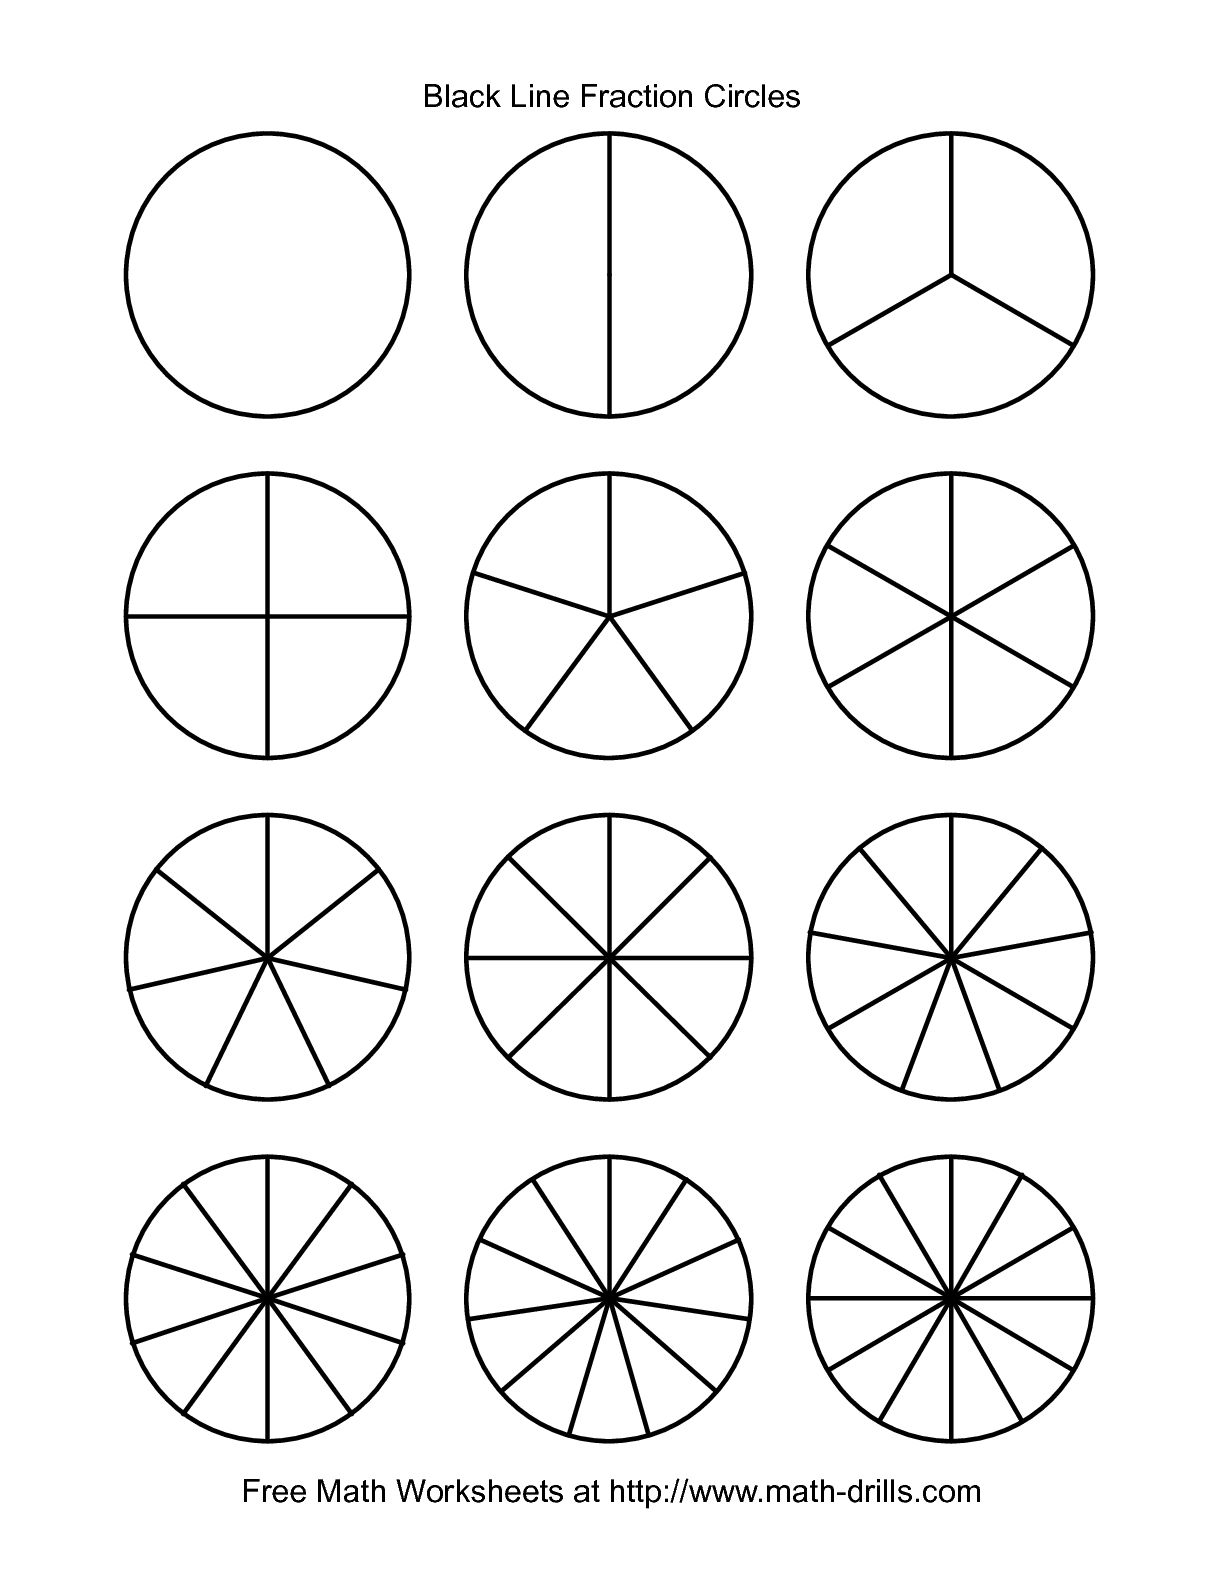 The Blackline Fraction Circles Small Unlabeled Fractions Worksheet